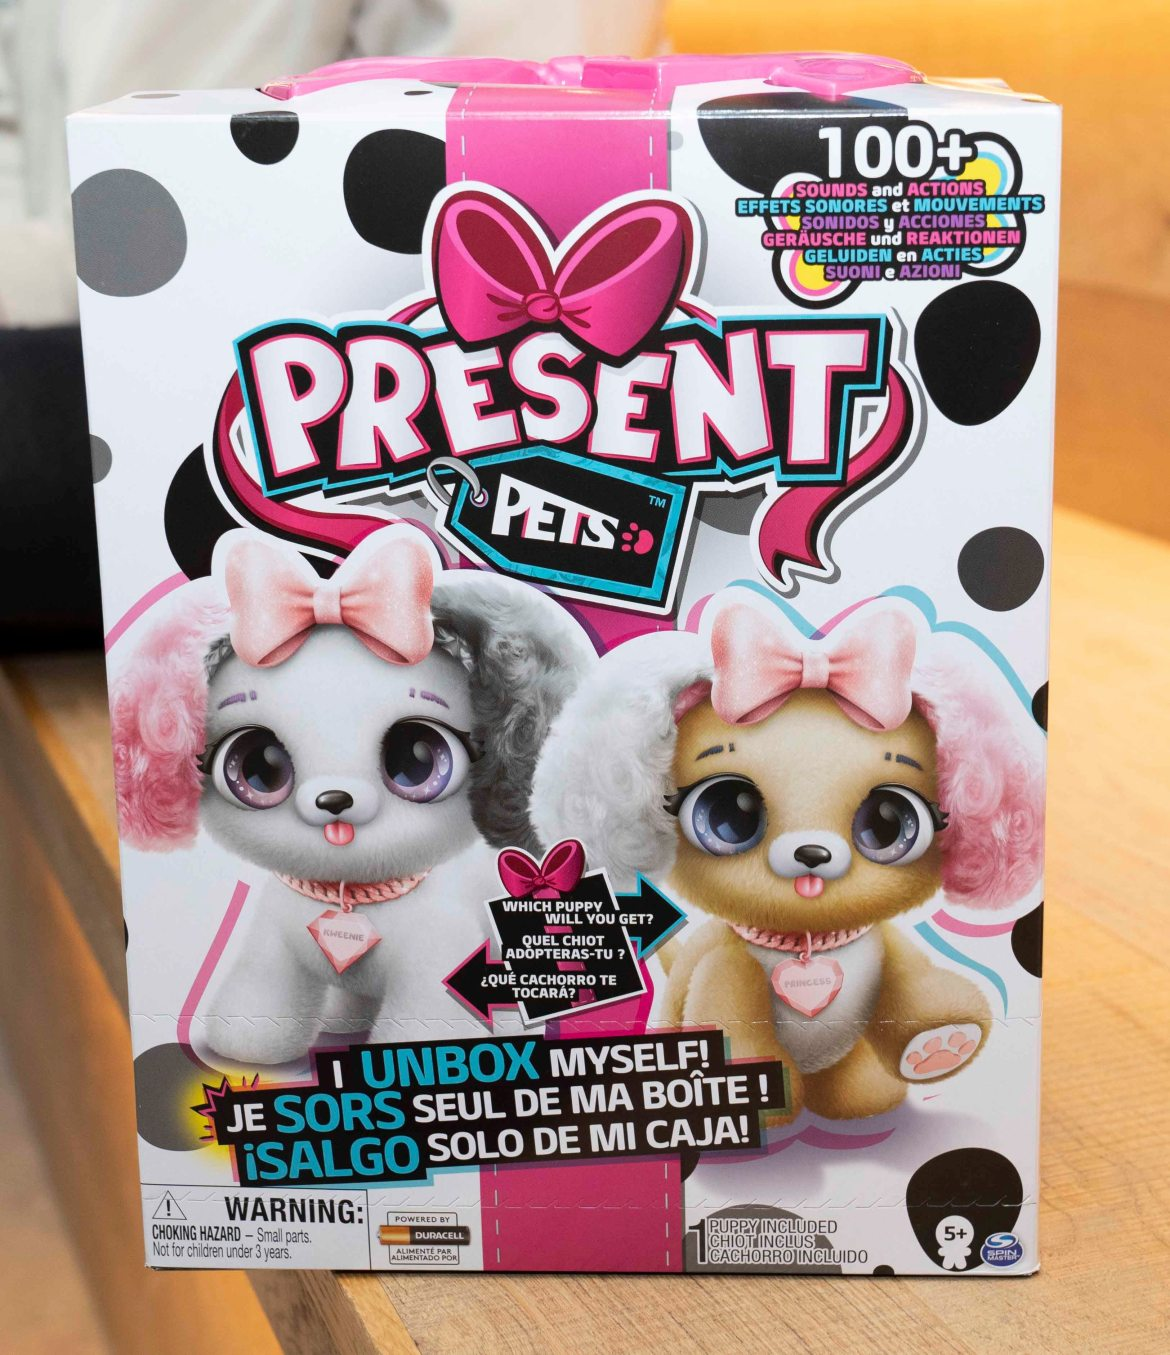 Present Pets, with a £54.99 price tag, is among this season's most wanted toys